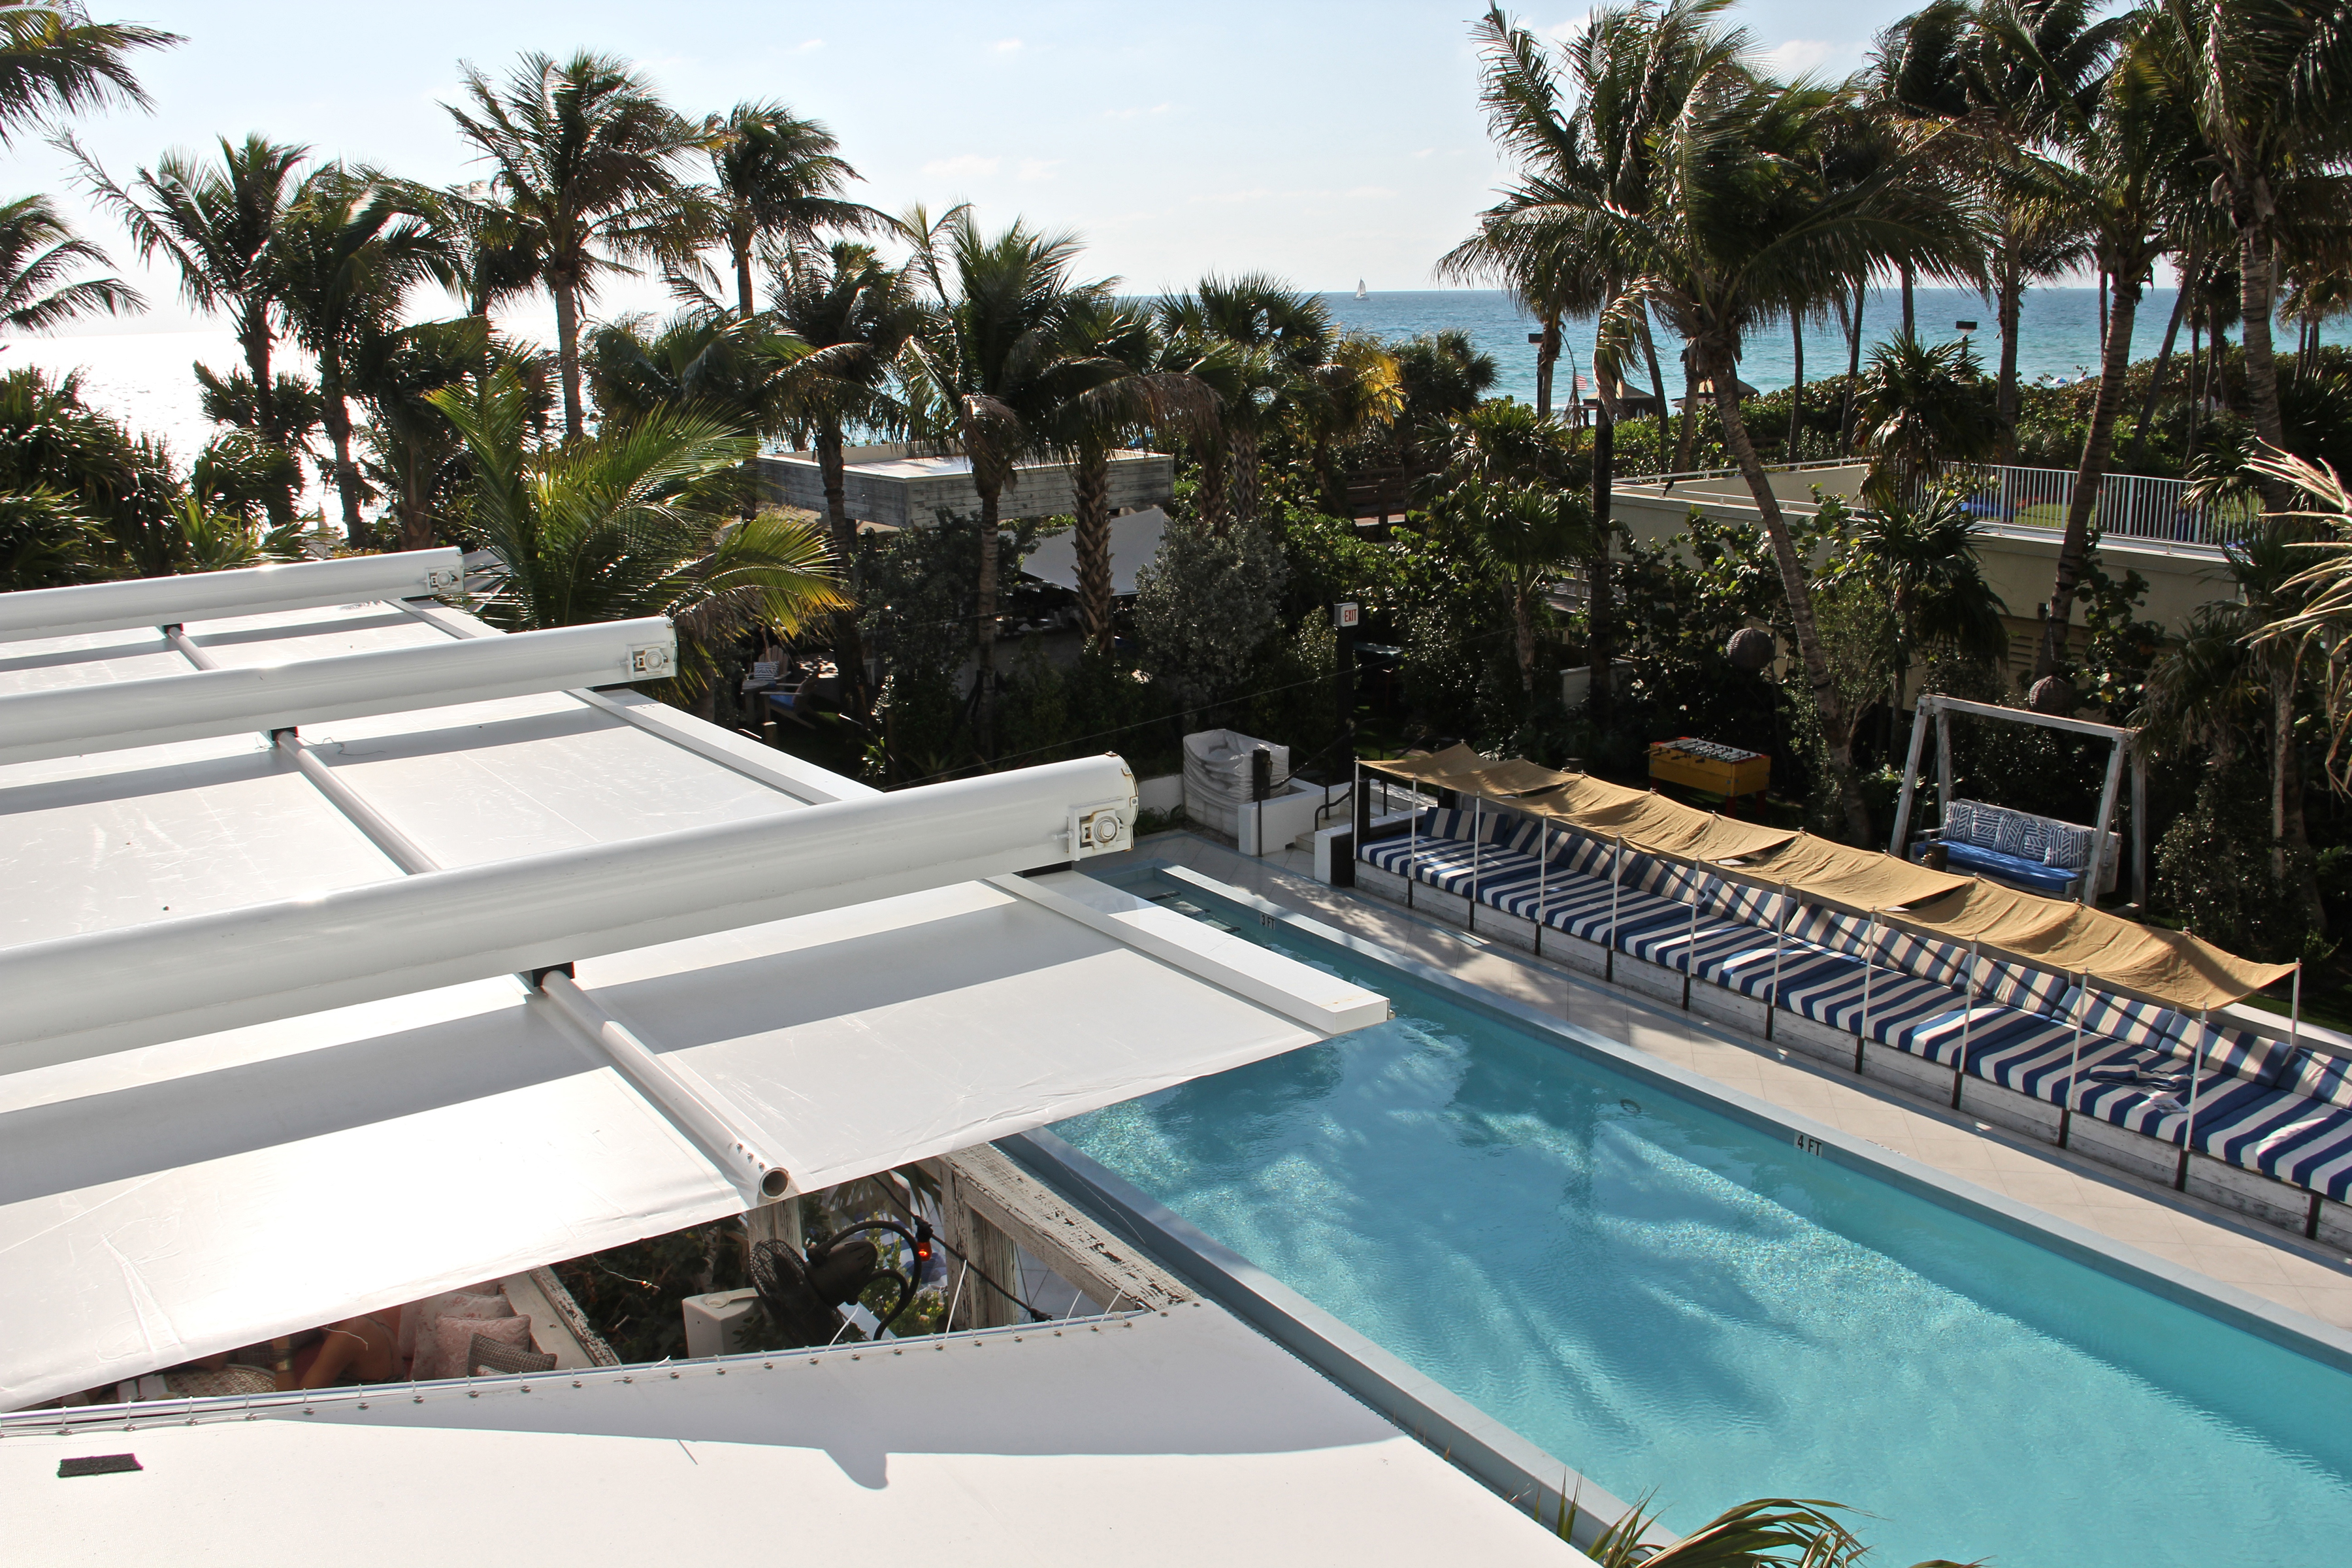 dsc gardens themed hotels executive fantasy miami motel cheap garden hotel rooms room in archive